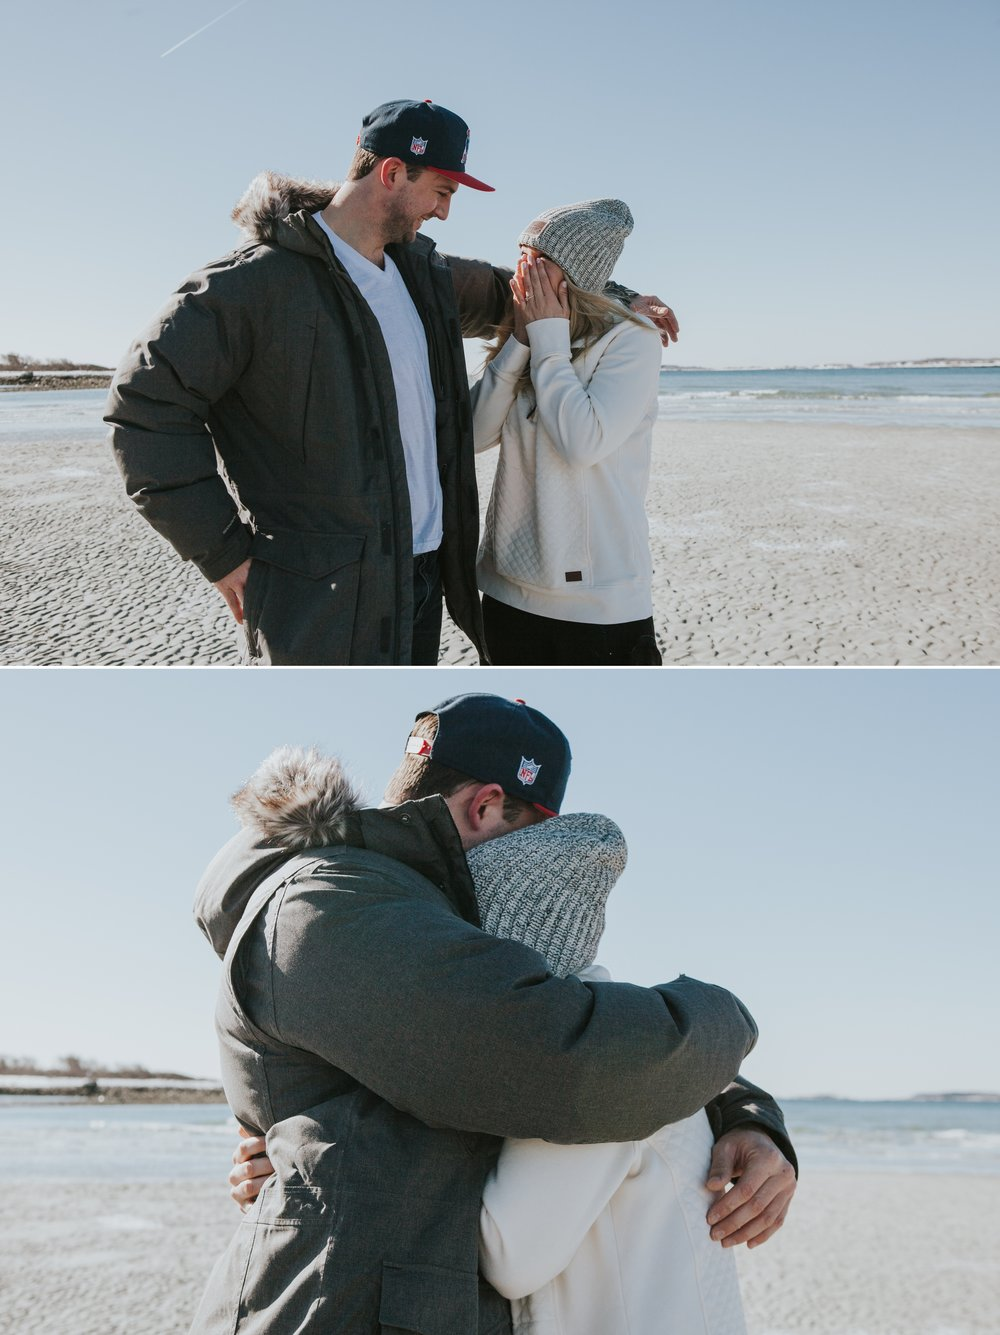 Goose Rocks Beach Kennebunkport Maine Engagement Proposal 3 © Heidi Kirn Photography.jpg